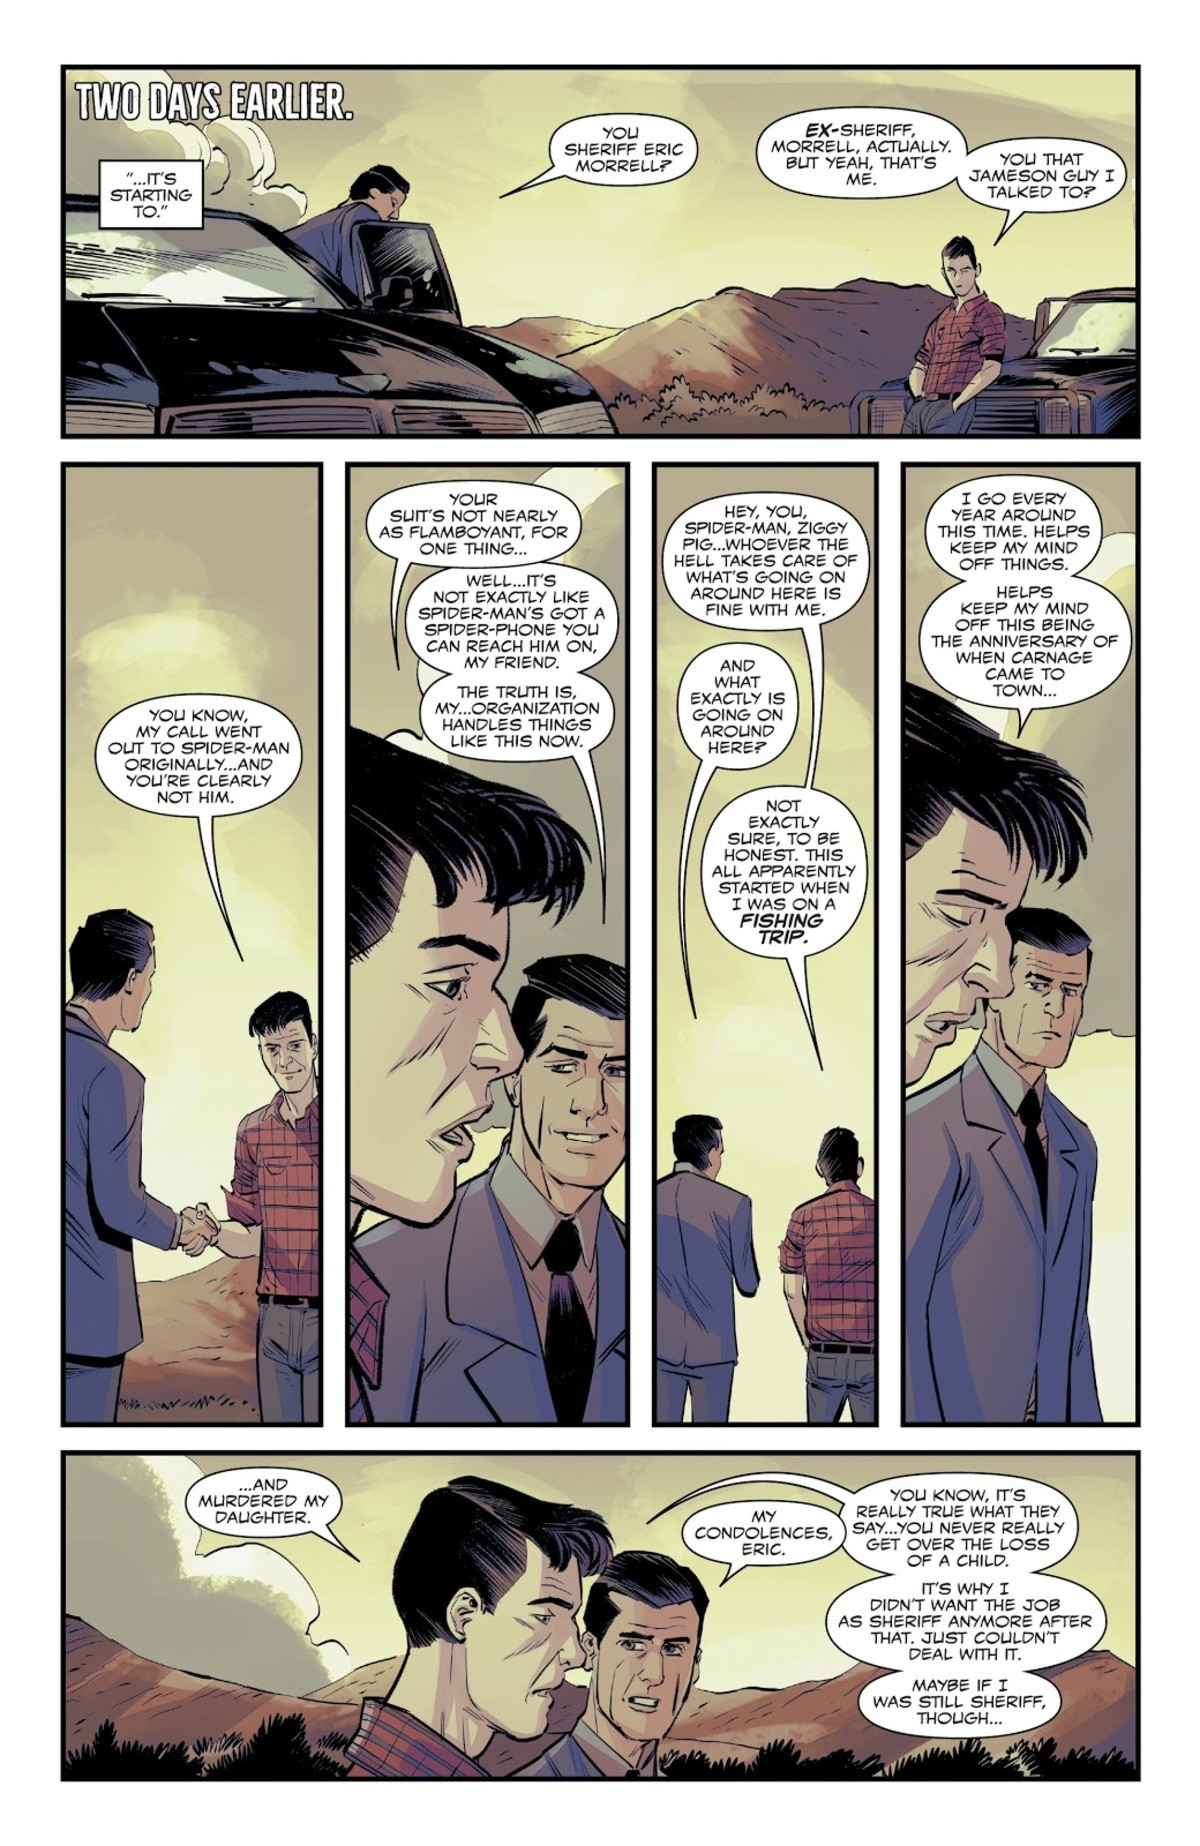 So dark! You sure this isn't from the DC universe?. Everyone's favorite son of J. Jonah Jameson seems to be a main character in this story. Though Marvel did go